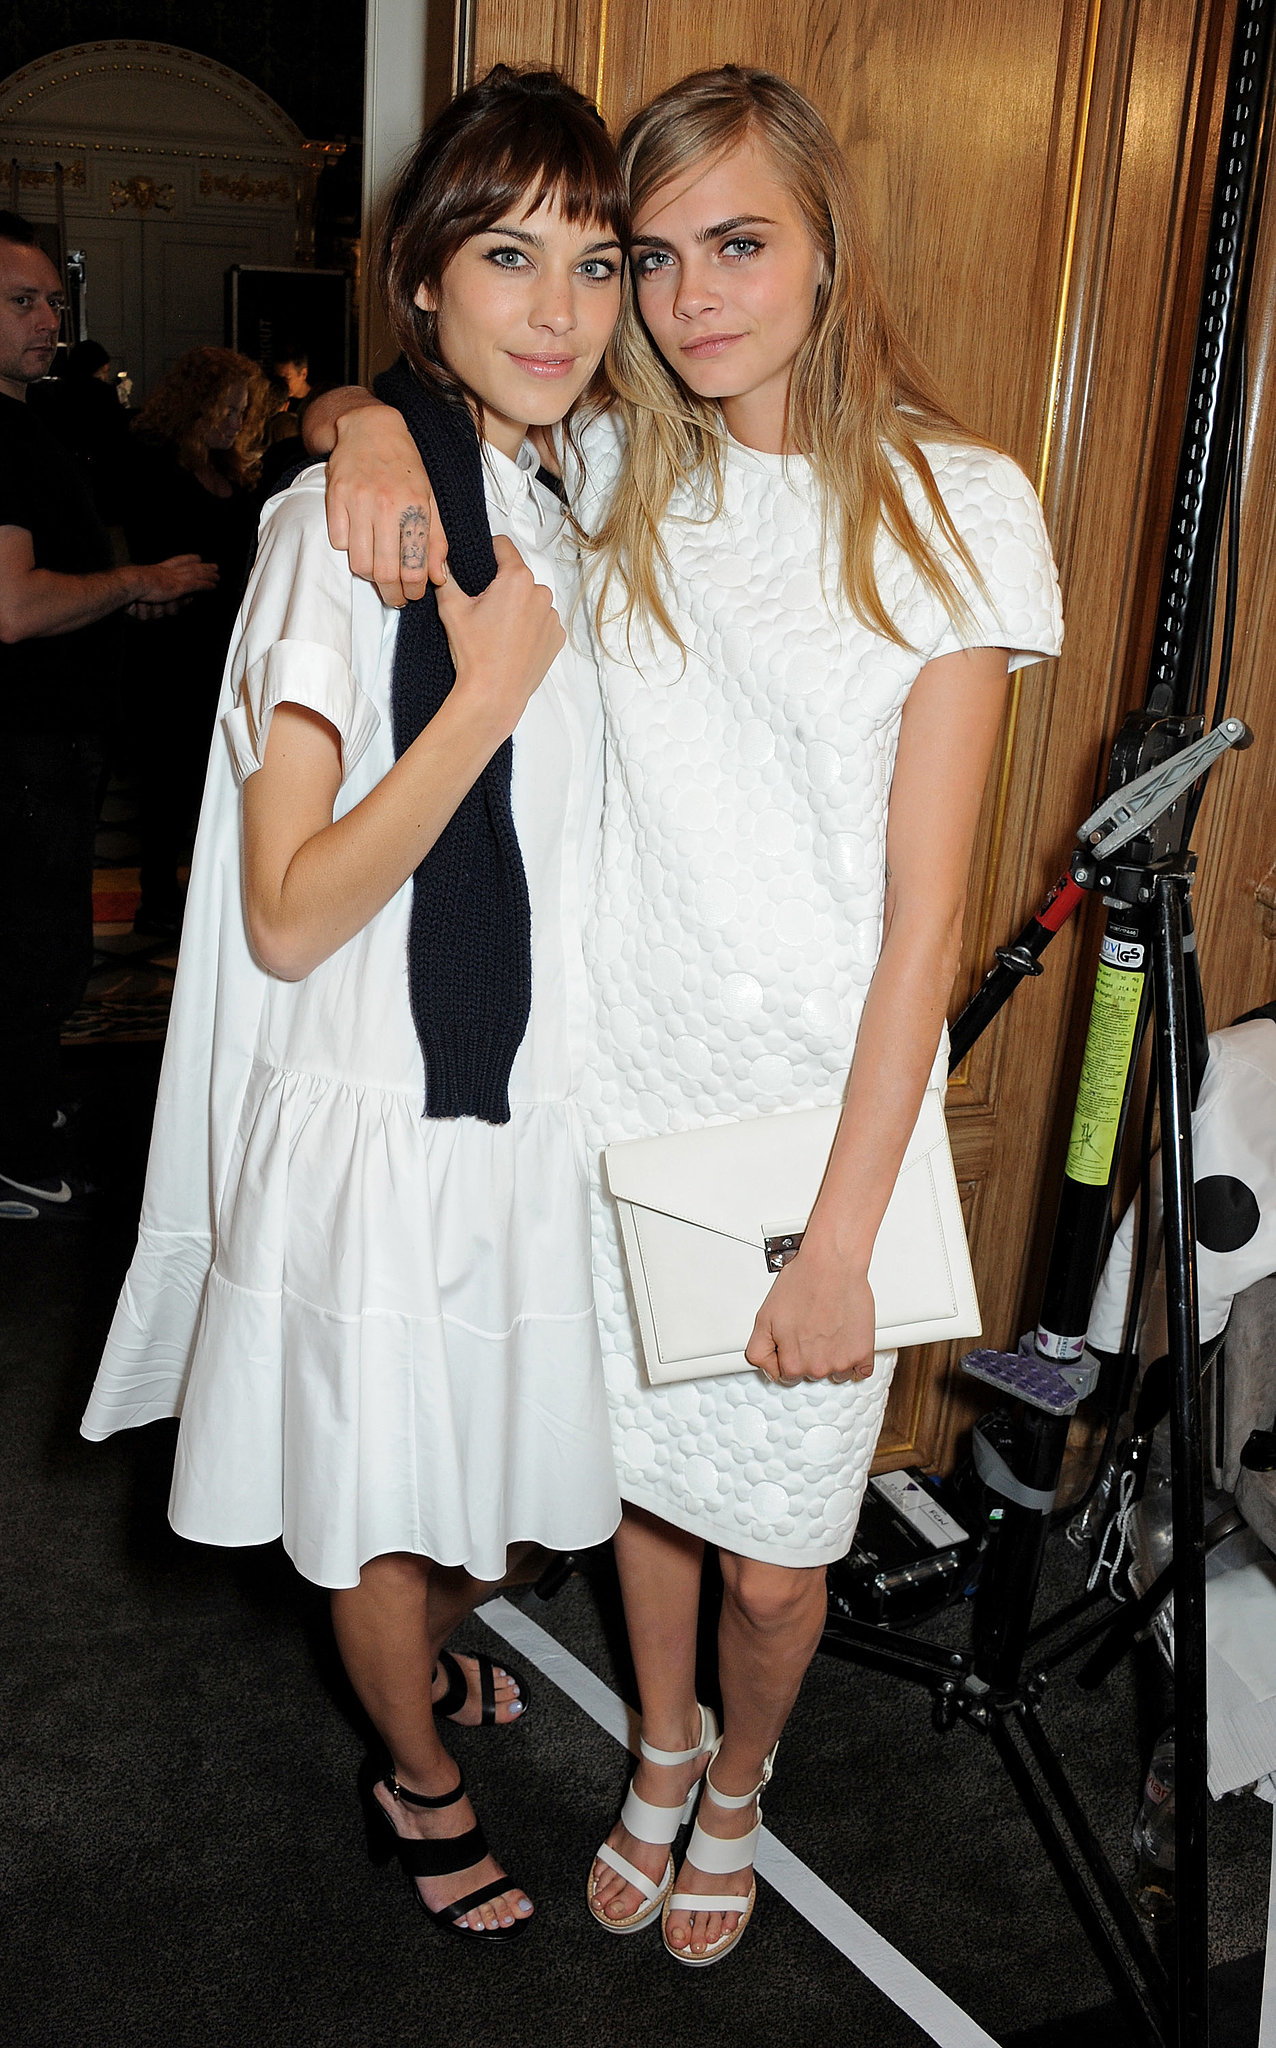 While attending the Mulberry show, Alexa Chung and Cara Delevingne were white hot in their coordinated designs.